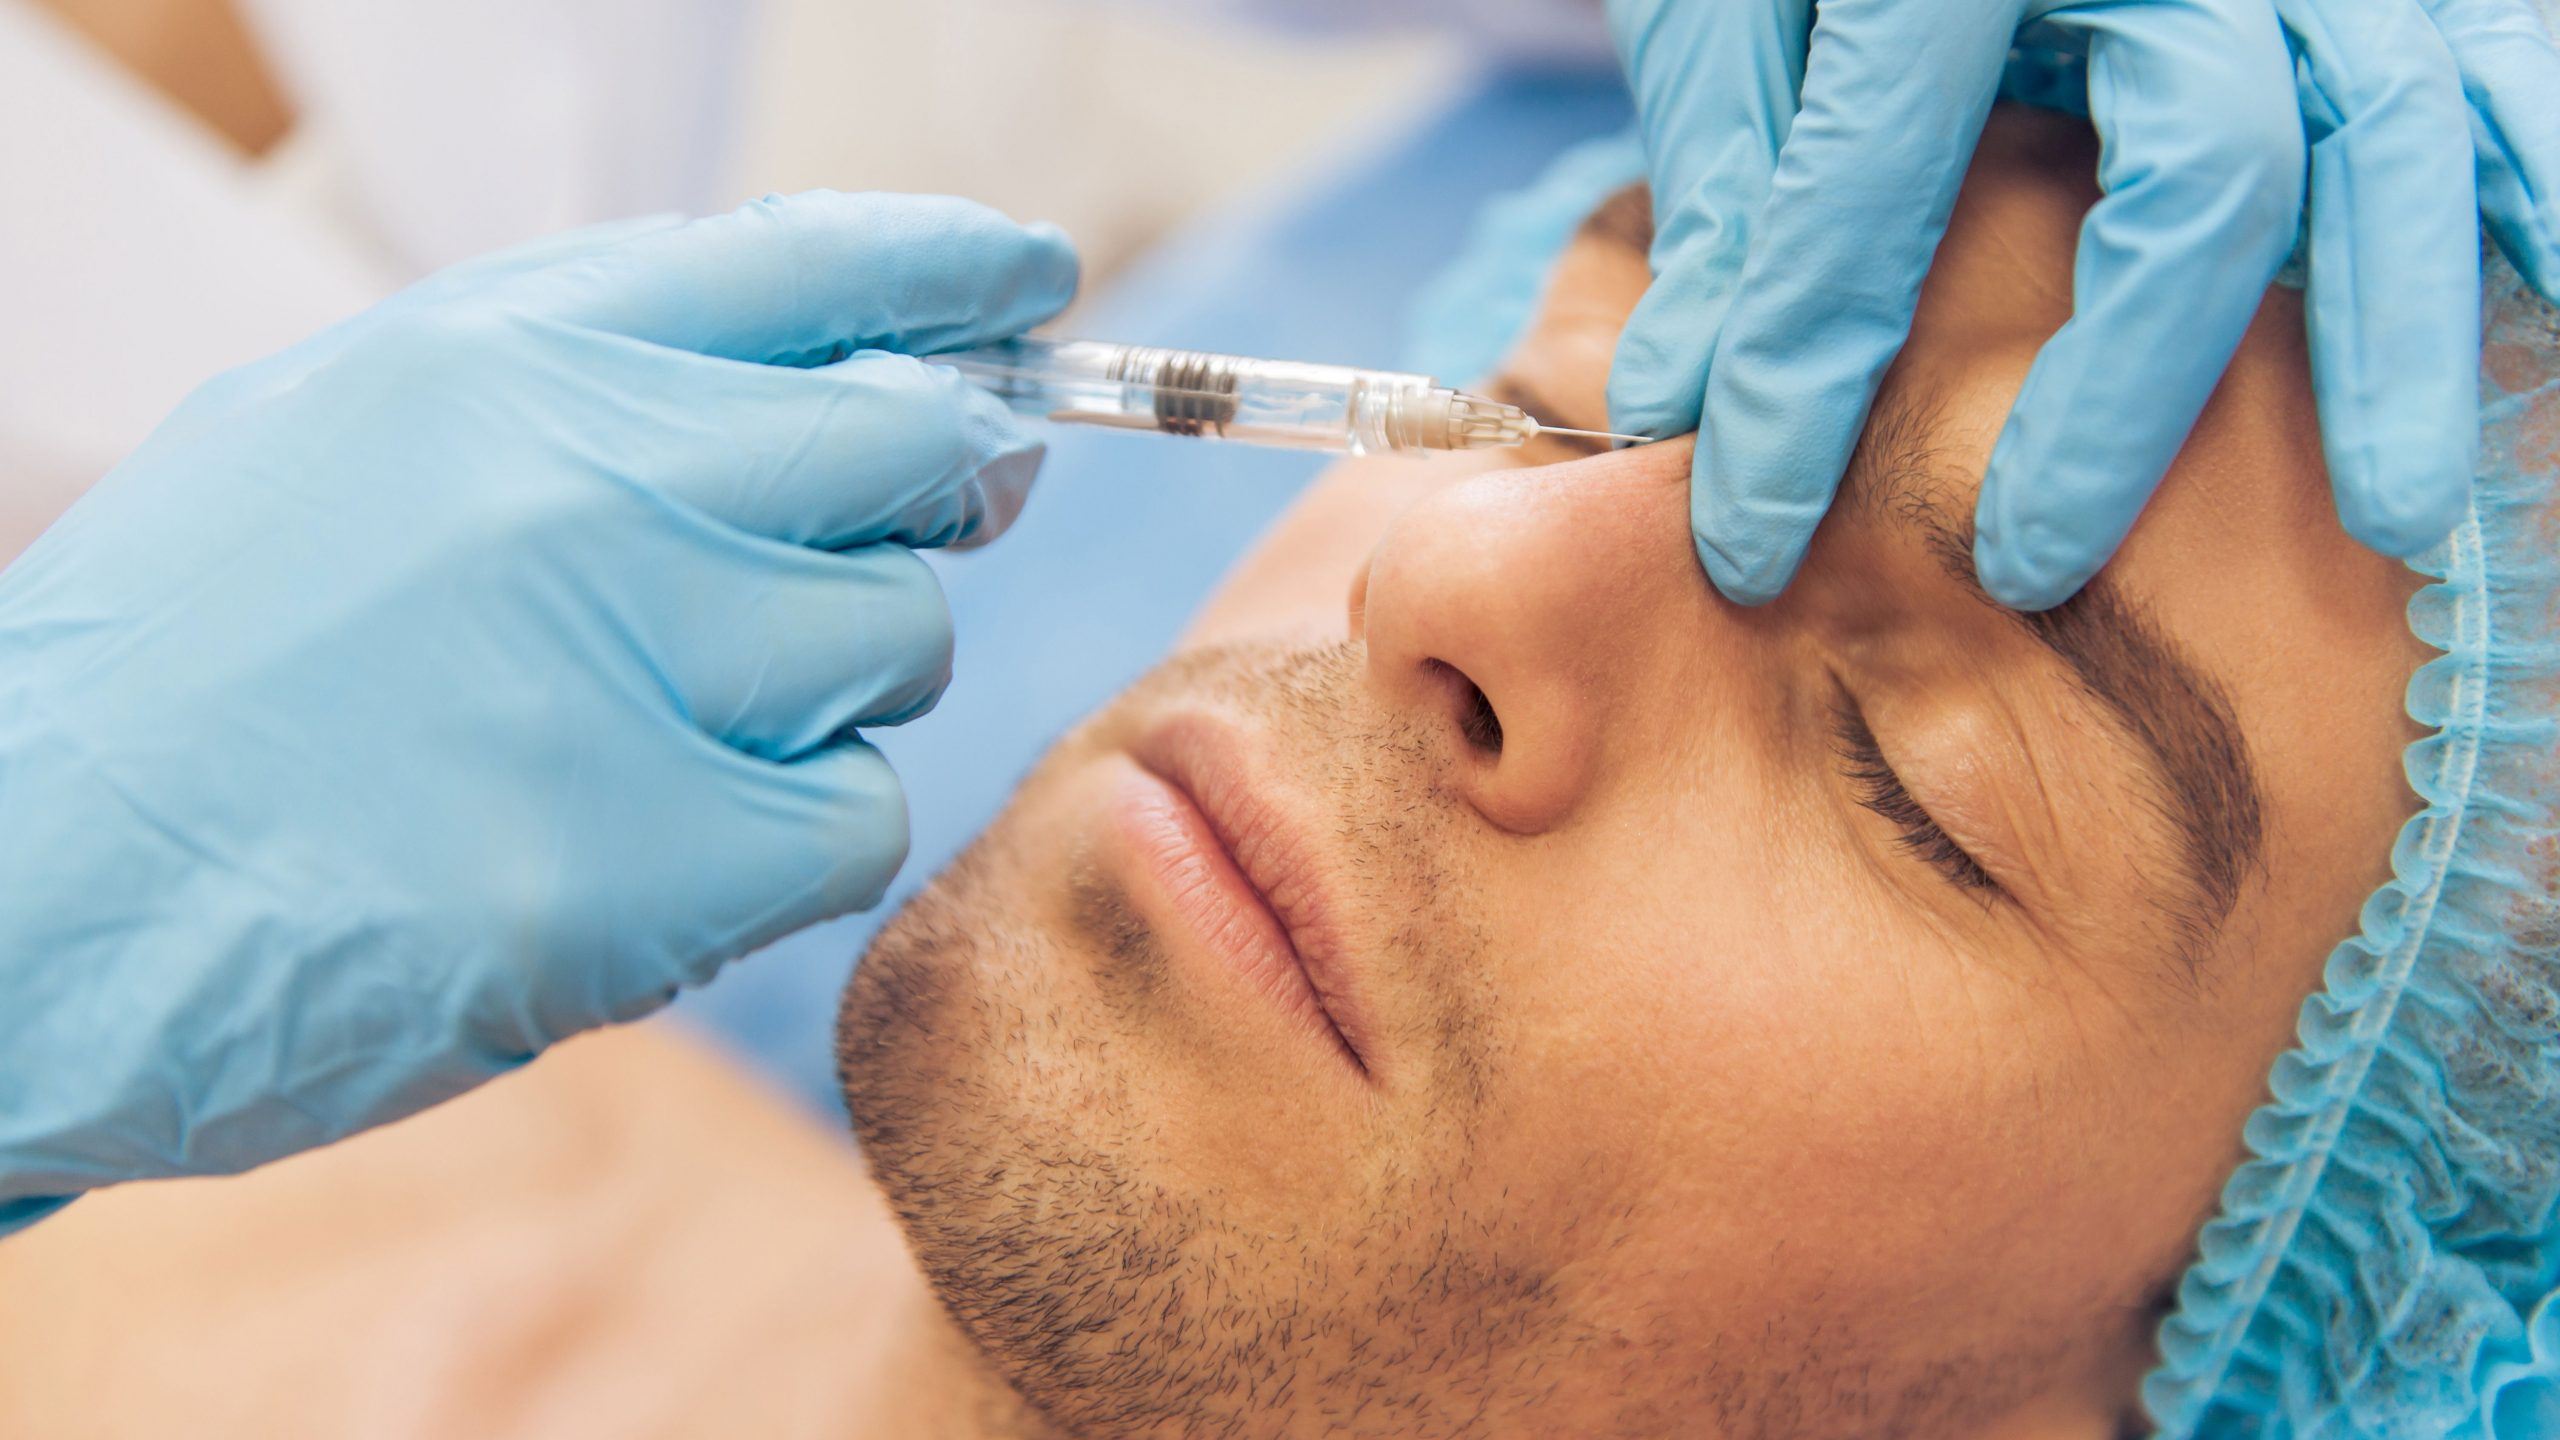 5 Tips For Getting Approved For Plastic Surgery Financing